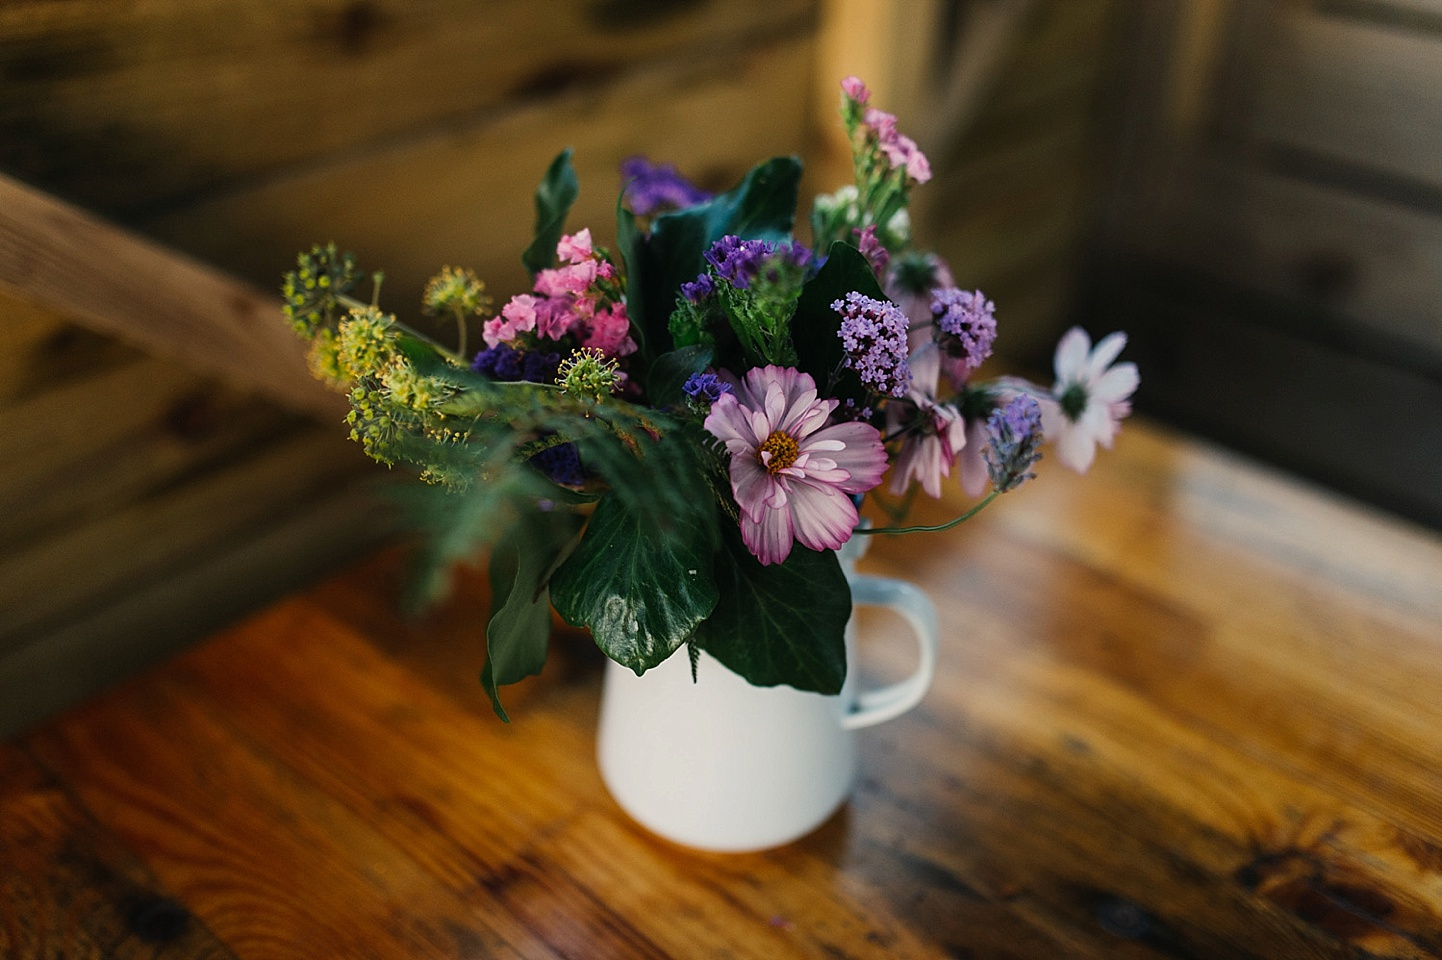 Wild flowers in a jug at rustic wedding venue in Wales - quirky Fforest wedding photography - Wales alternative wedding photography (c) Babb Photo - alternative wedding photographer